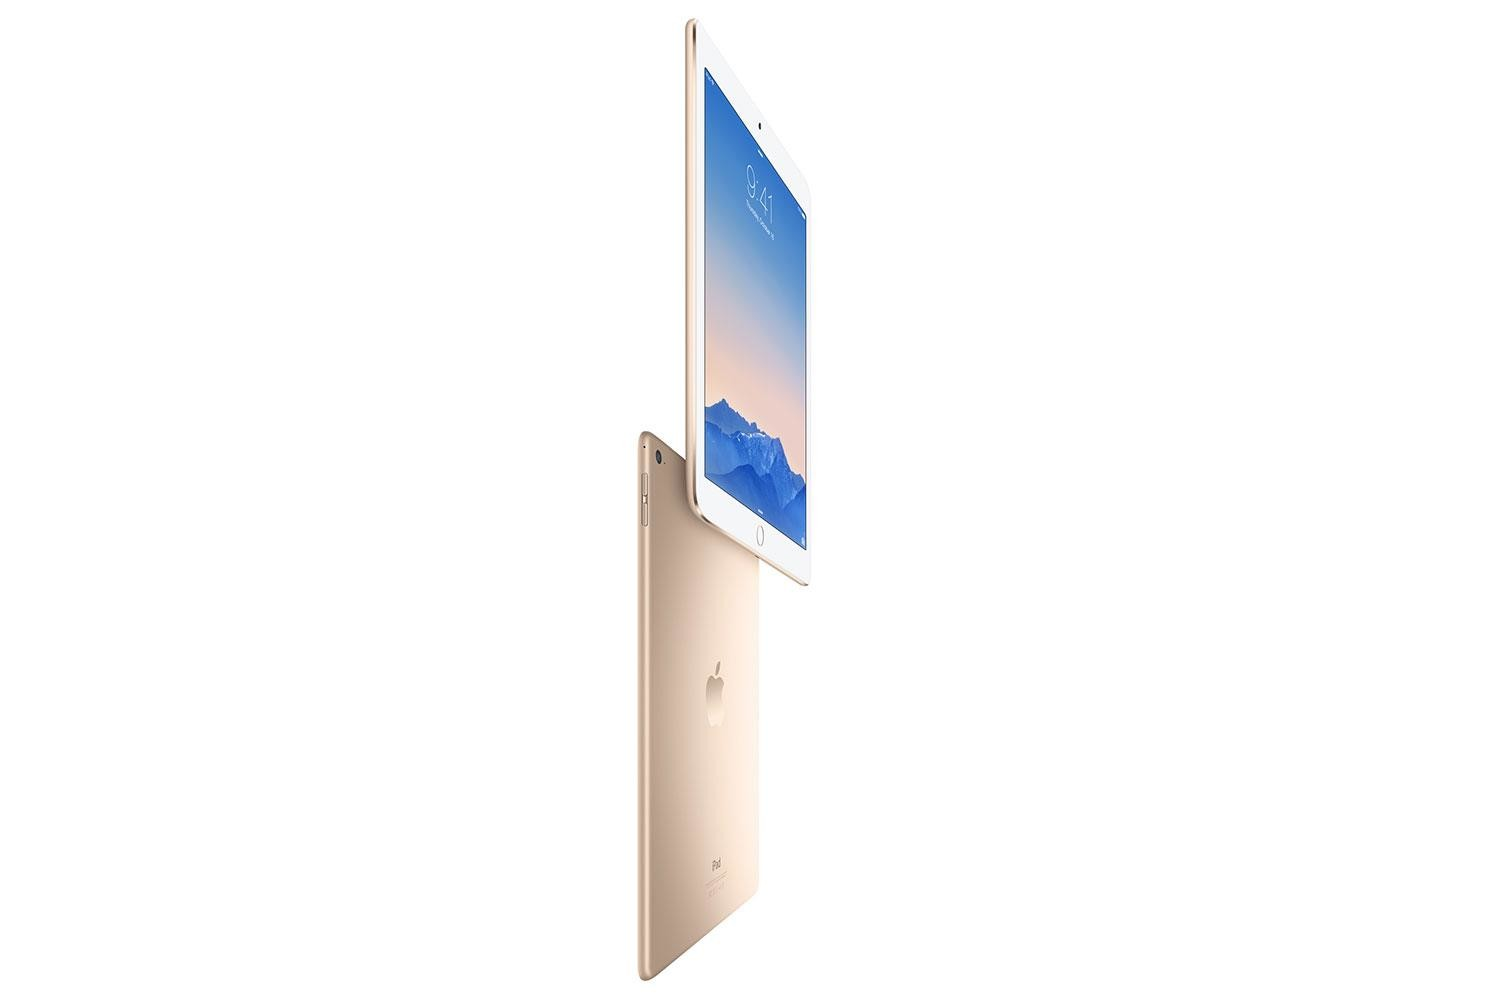 apple ipad air 2 mini 3 launch event news stacked press image